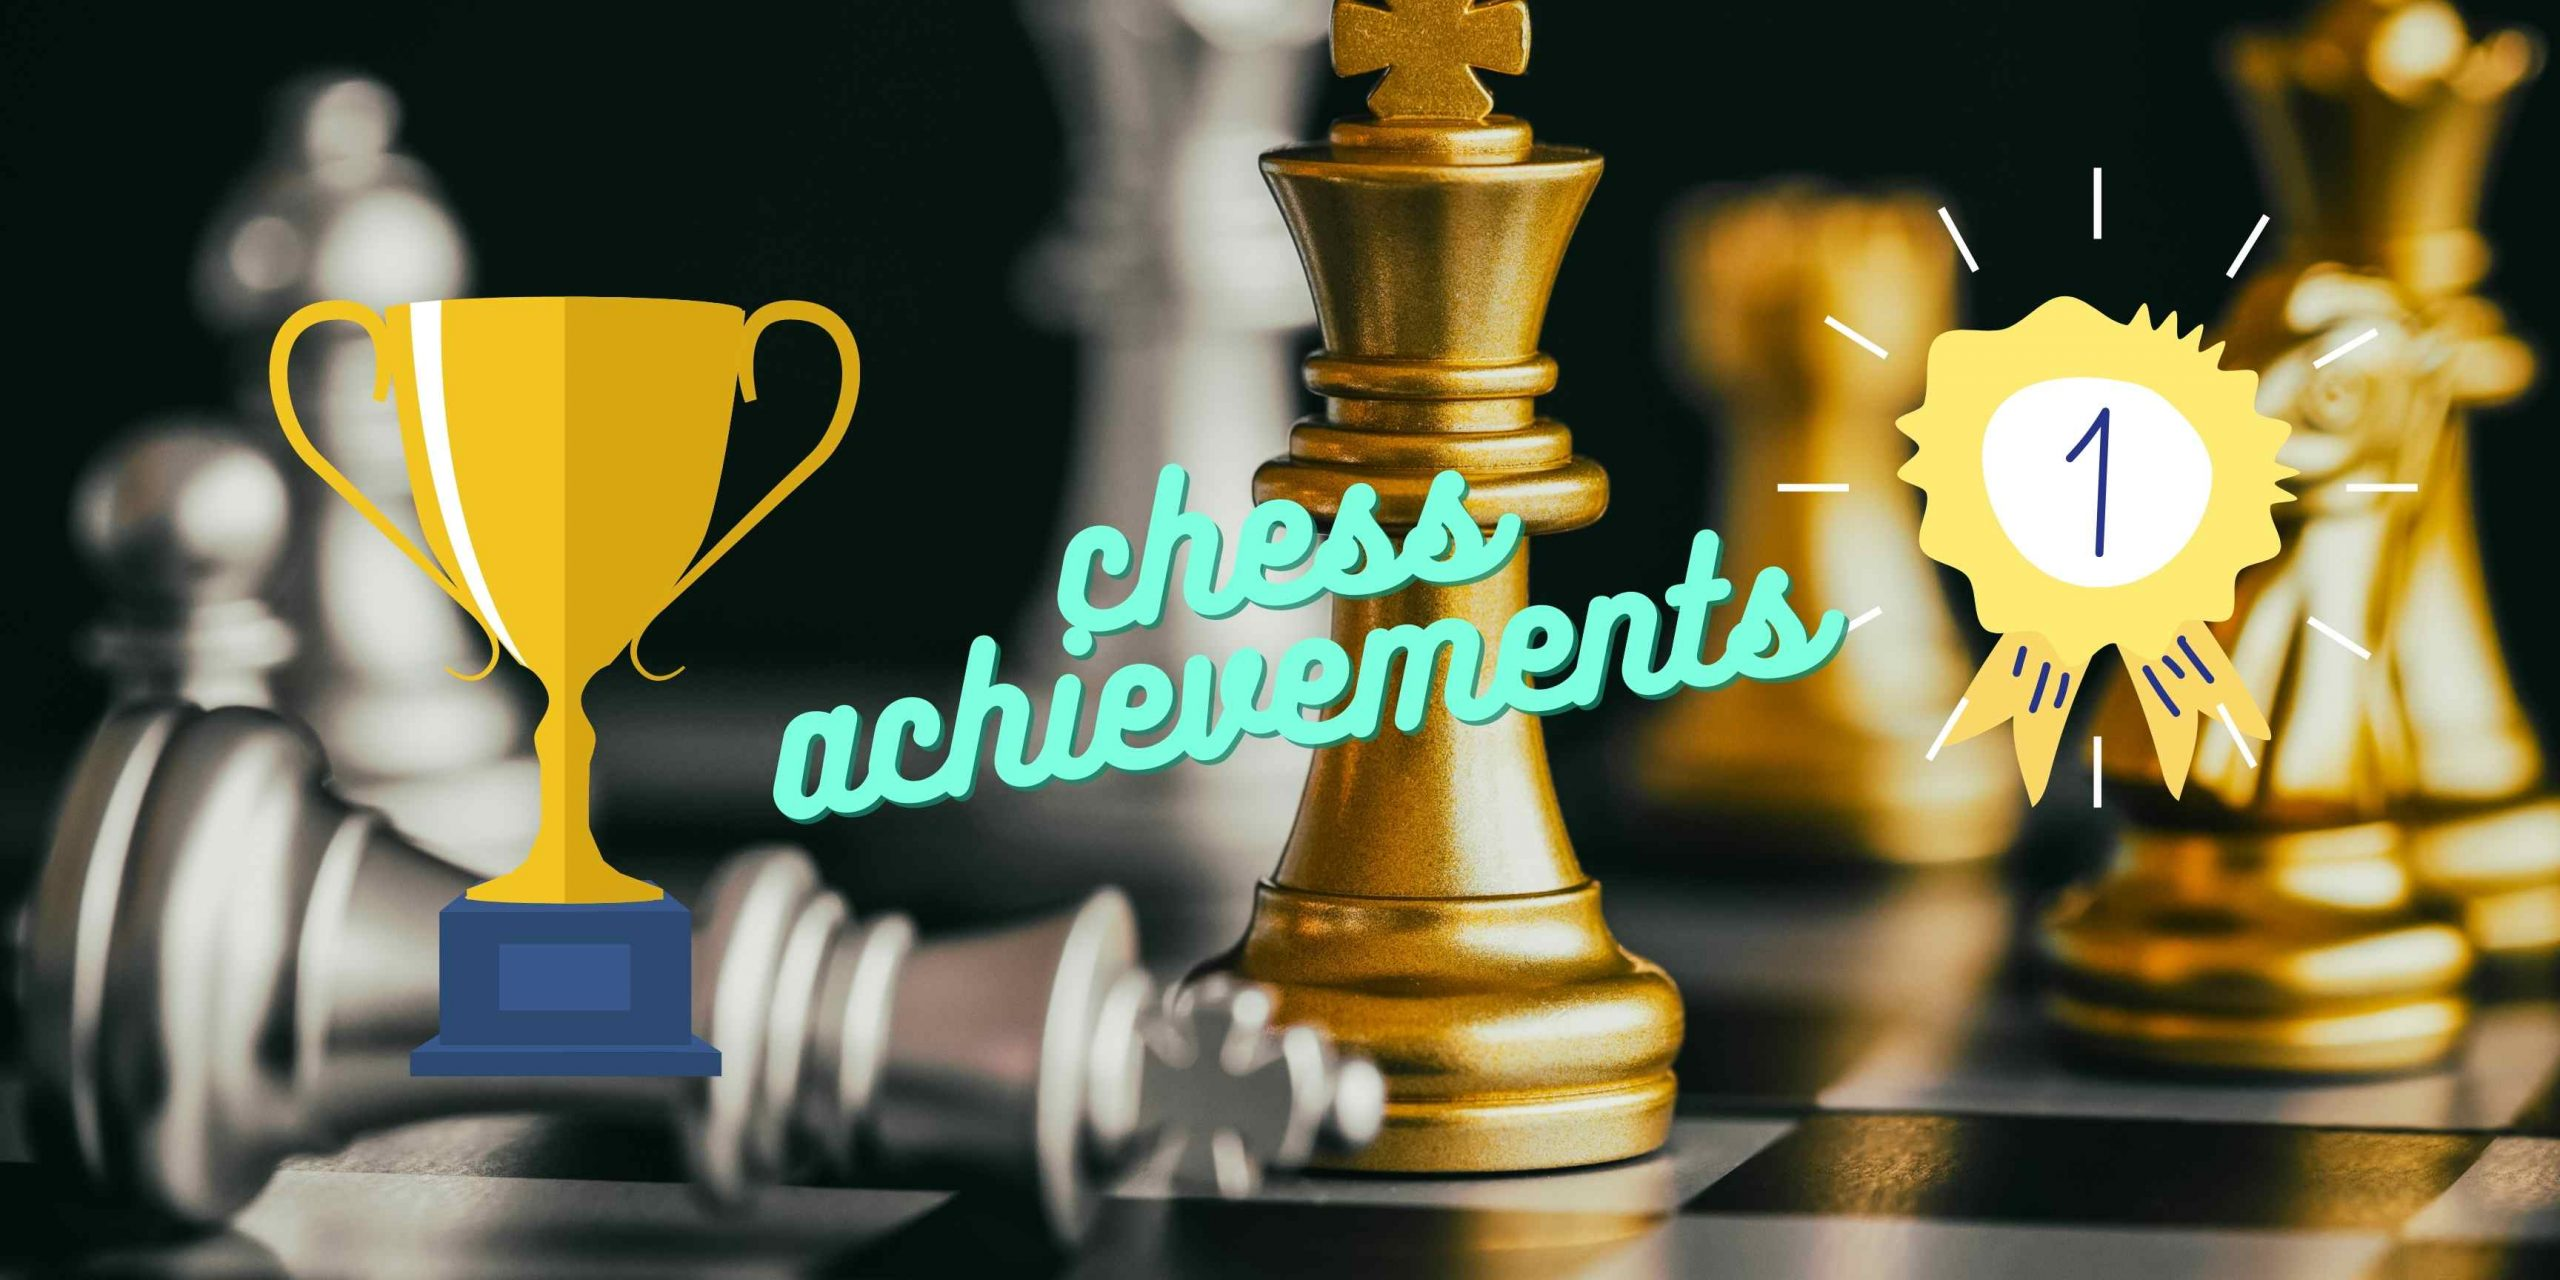 Overview of chess achievements post thumbnail image